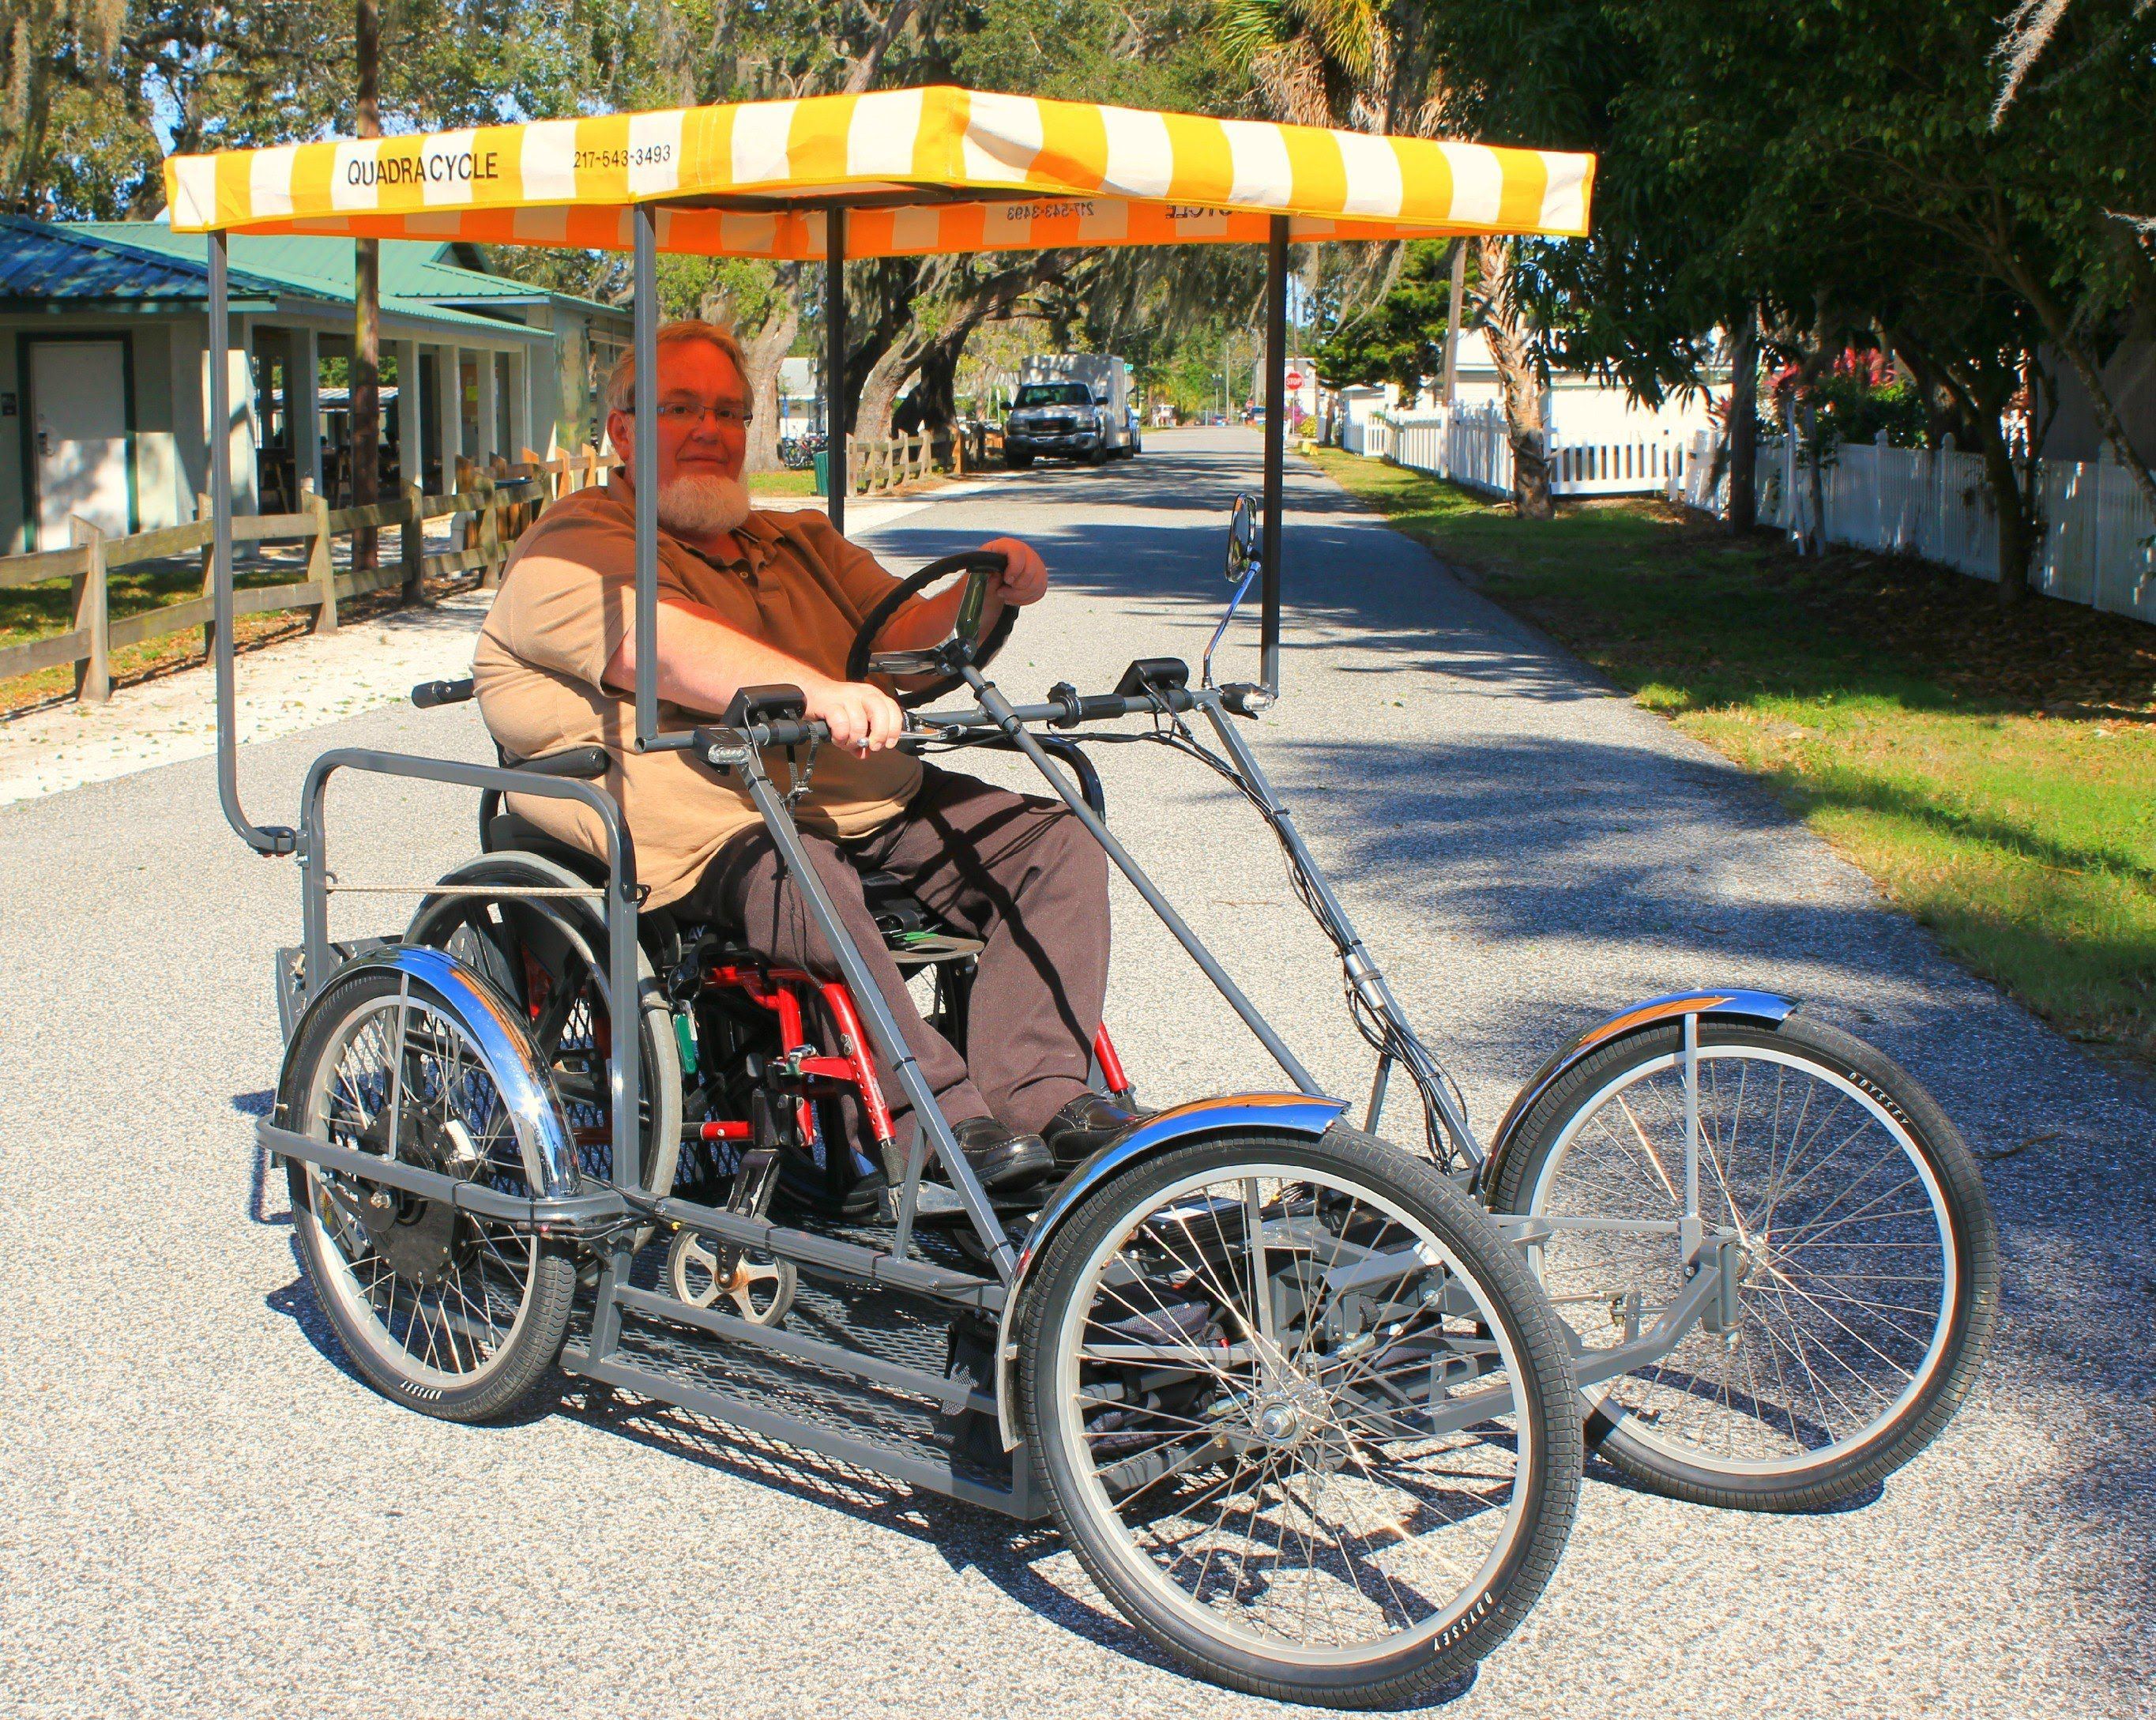 Four Wheel Electric Wheelchair Carrier Bike 4 Bicycle Wheels And Tires Pedal Cars